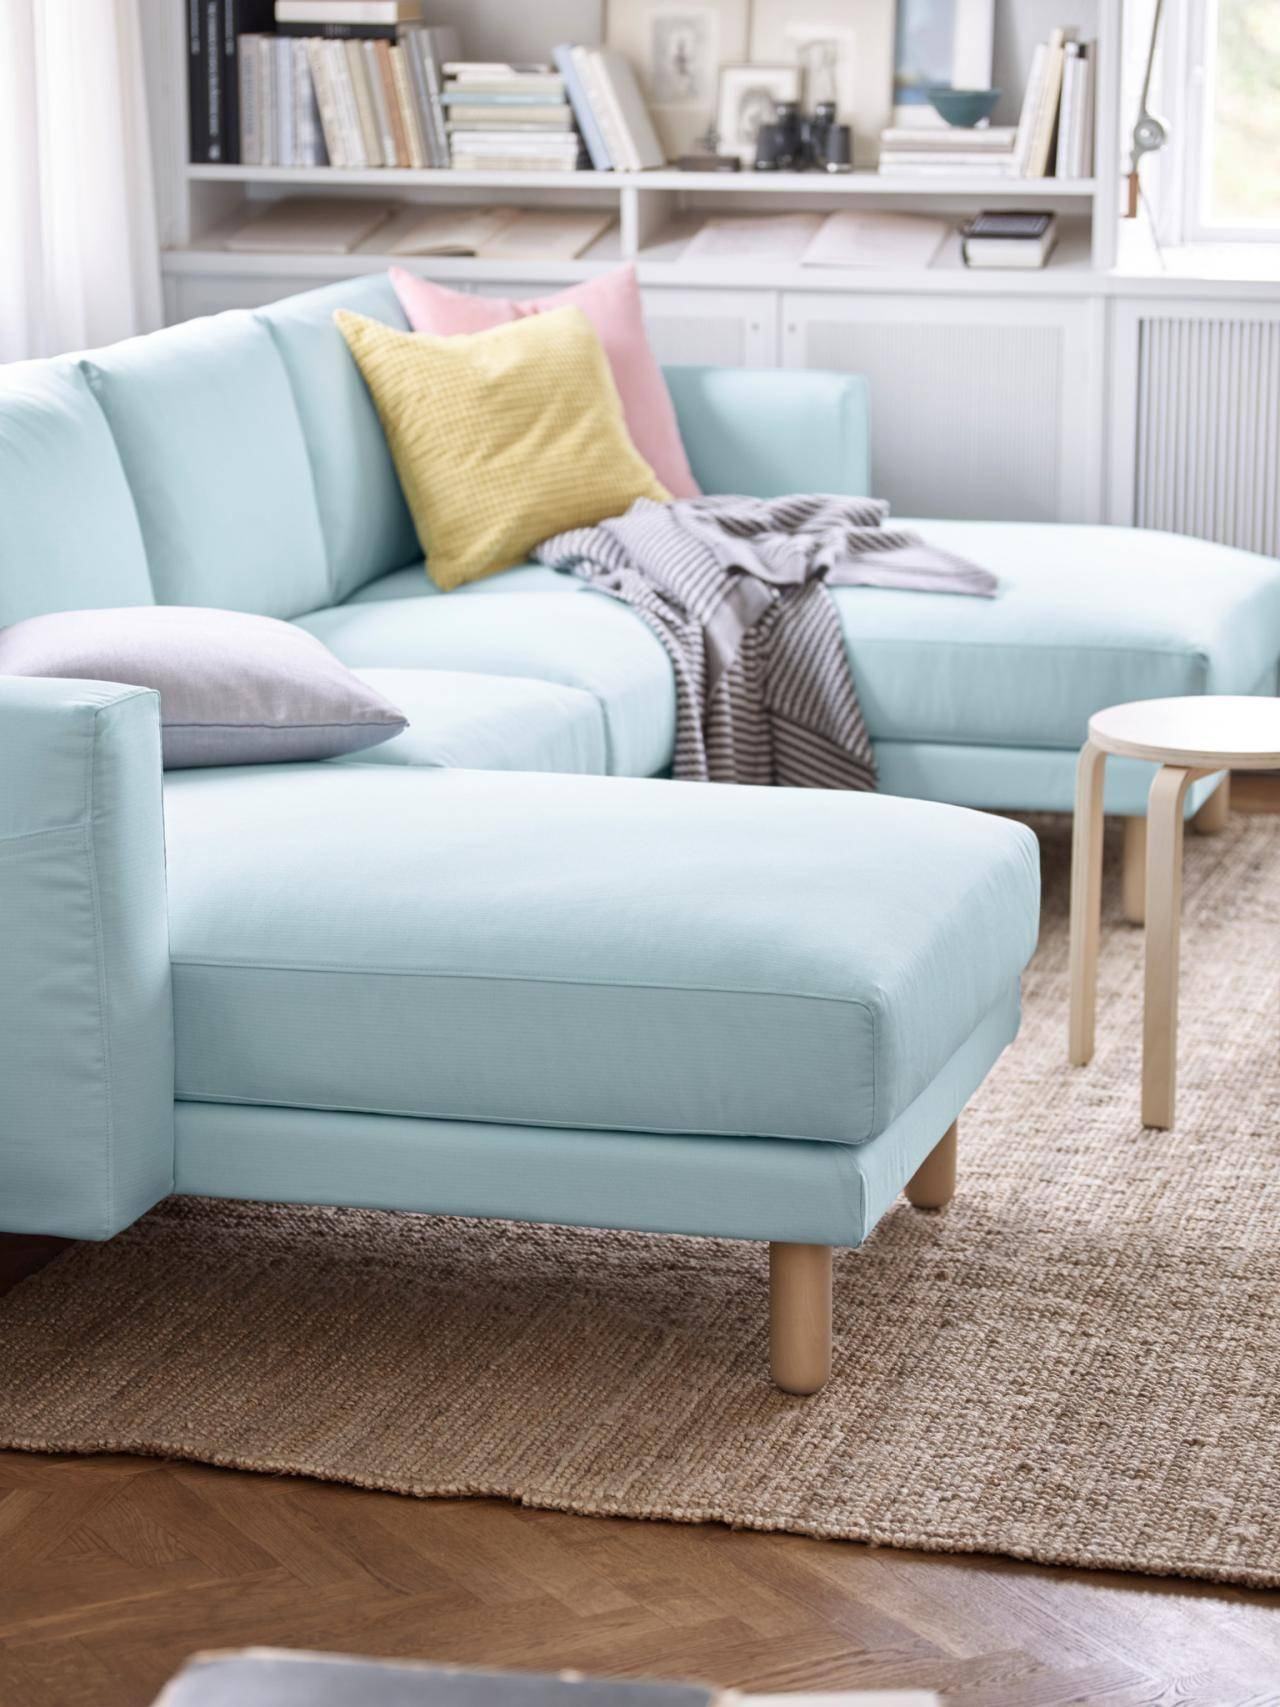 5 Apartment Sized Sofas That Are Lifesavers | Hgtv's Decorating In Apartment Sectional Sofa With Chaise (Photo 12 of 30)